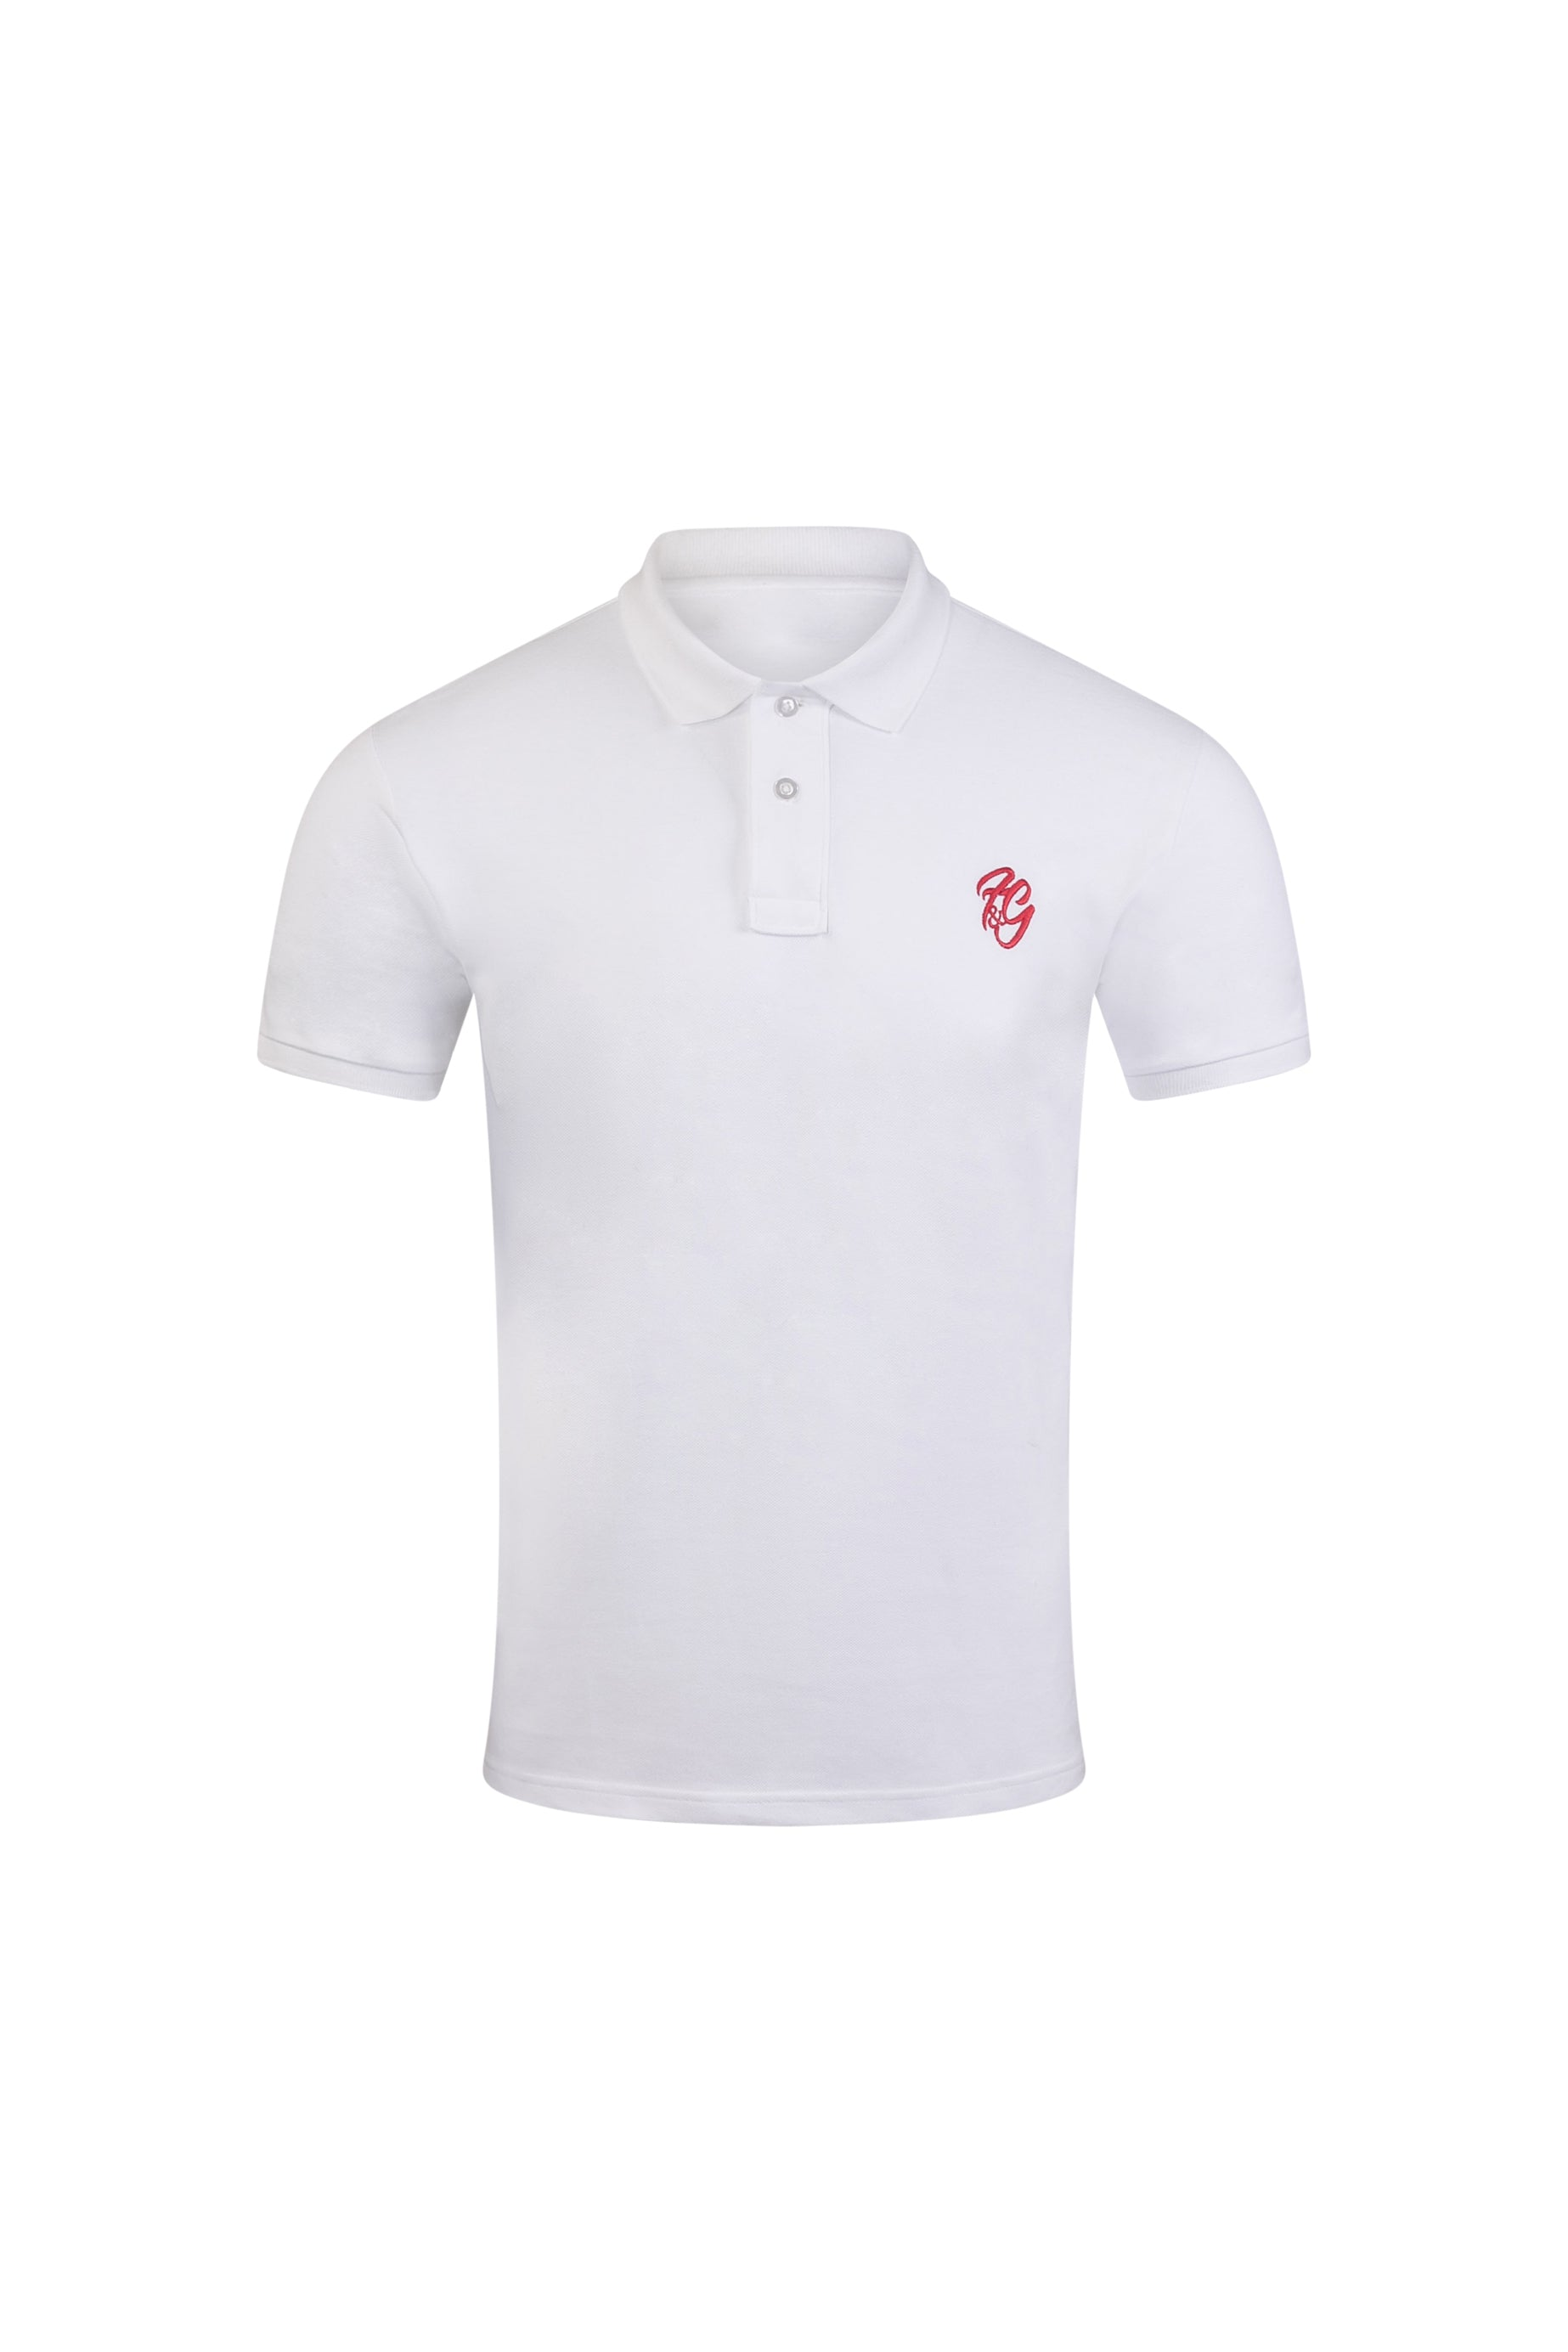 Mens F&G Embroidered Polo Shirt